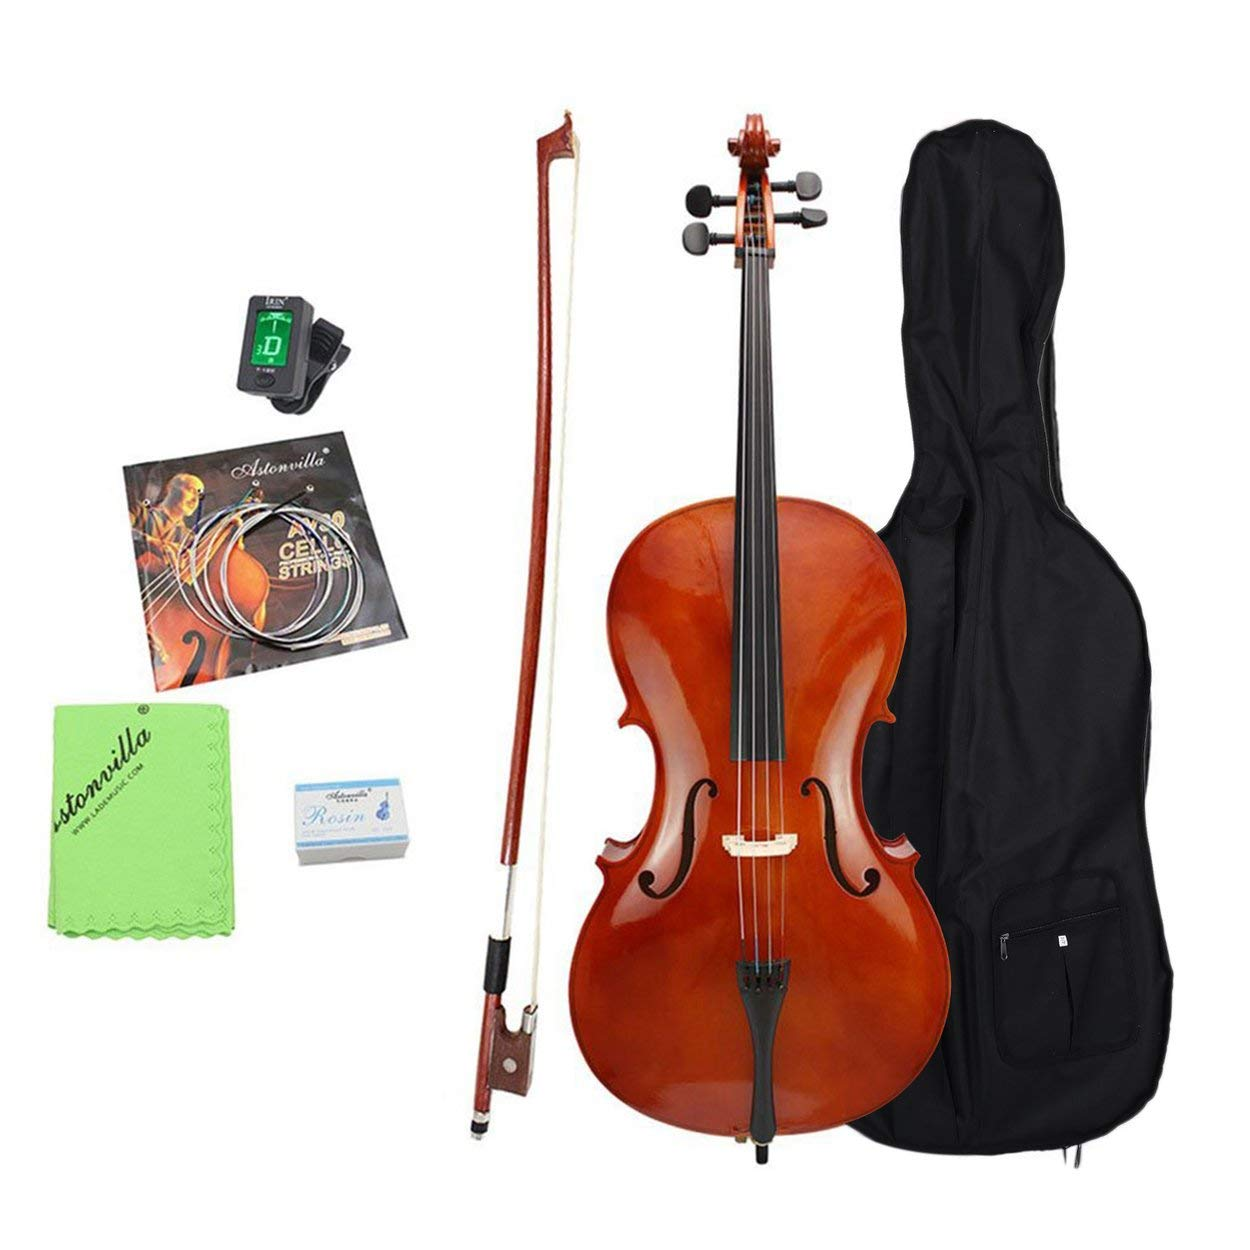 Professional 4/4 Cello Set Student Acoustic Bridge Full Size Cello With Storage Bag For Cello Beginner Students